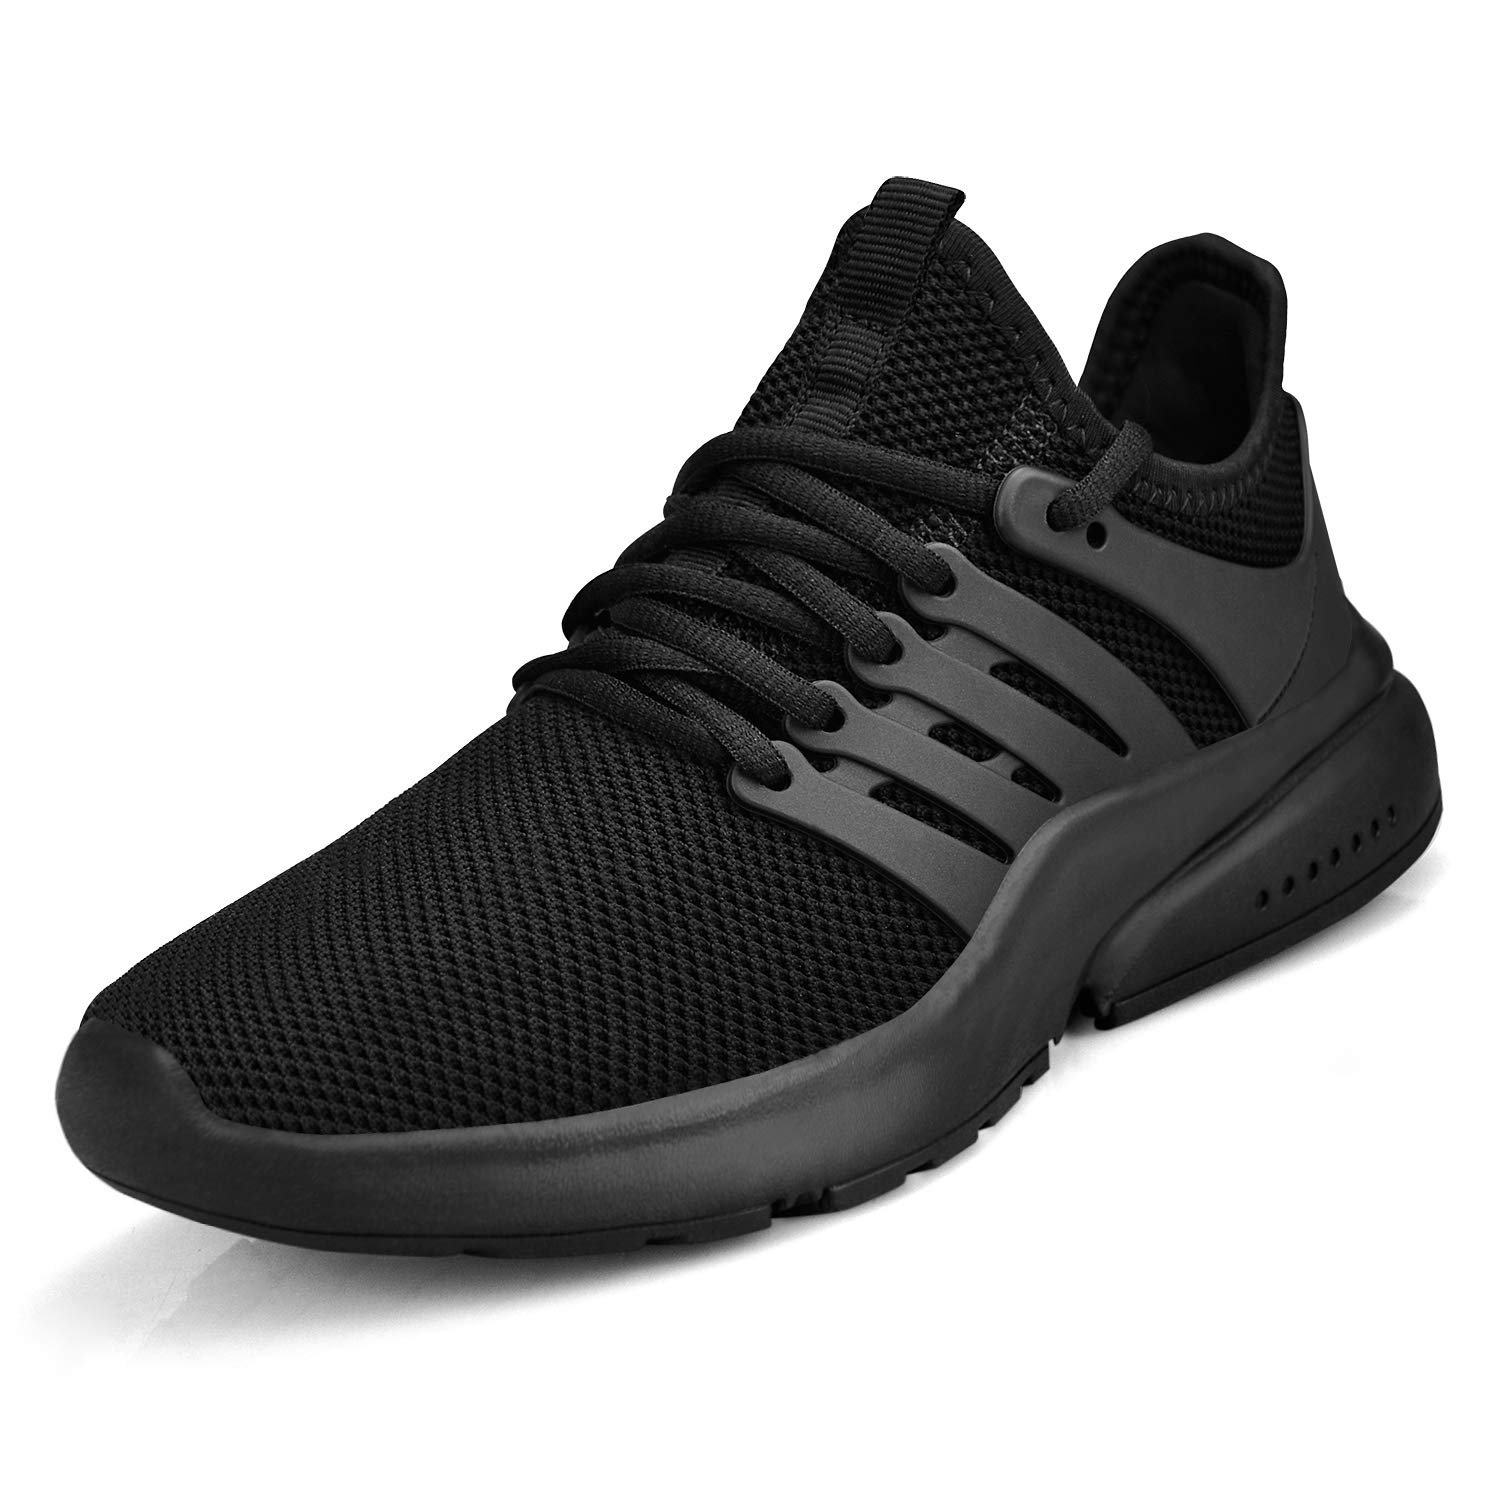 All Black Feetmat Women's Running shoes Lightweight Non Slip Breathable Mesh Sneakers Sports Athletic Walking shoes